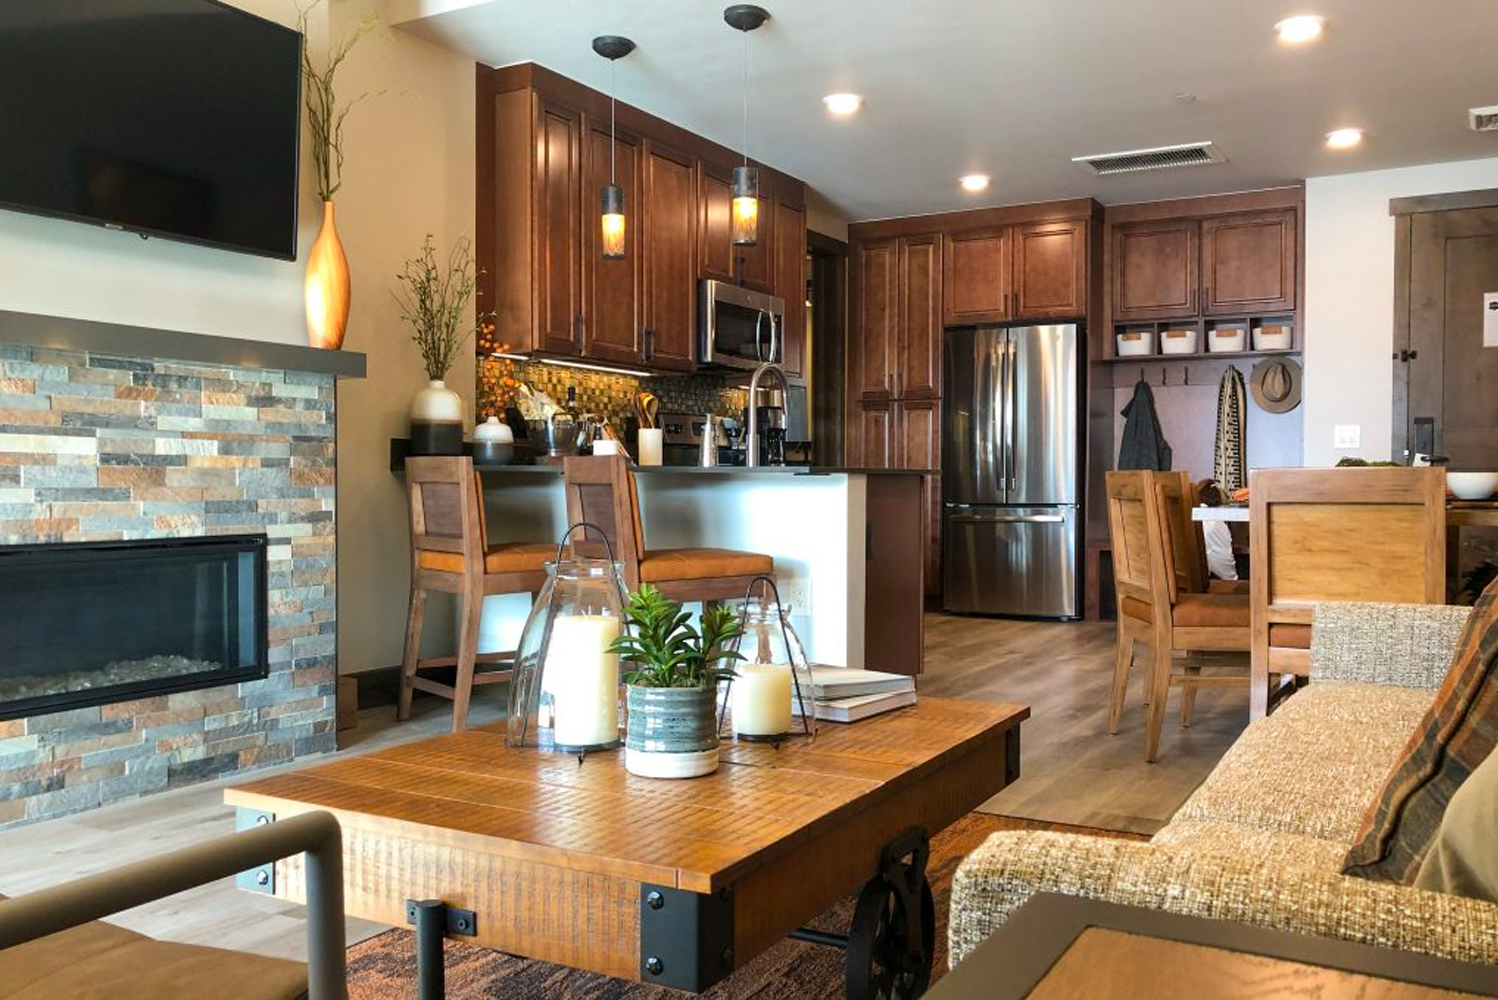 Villas also include fully-equipped kitchens, living rooms and fireplaces.